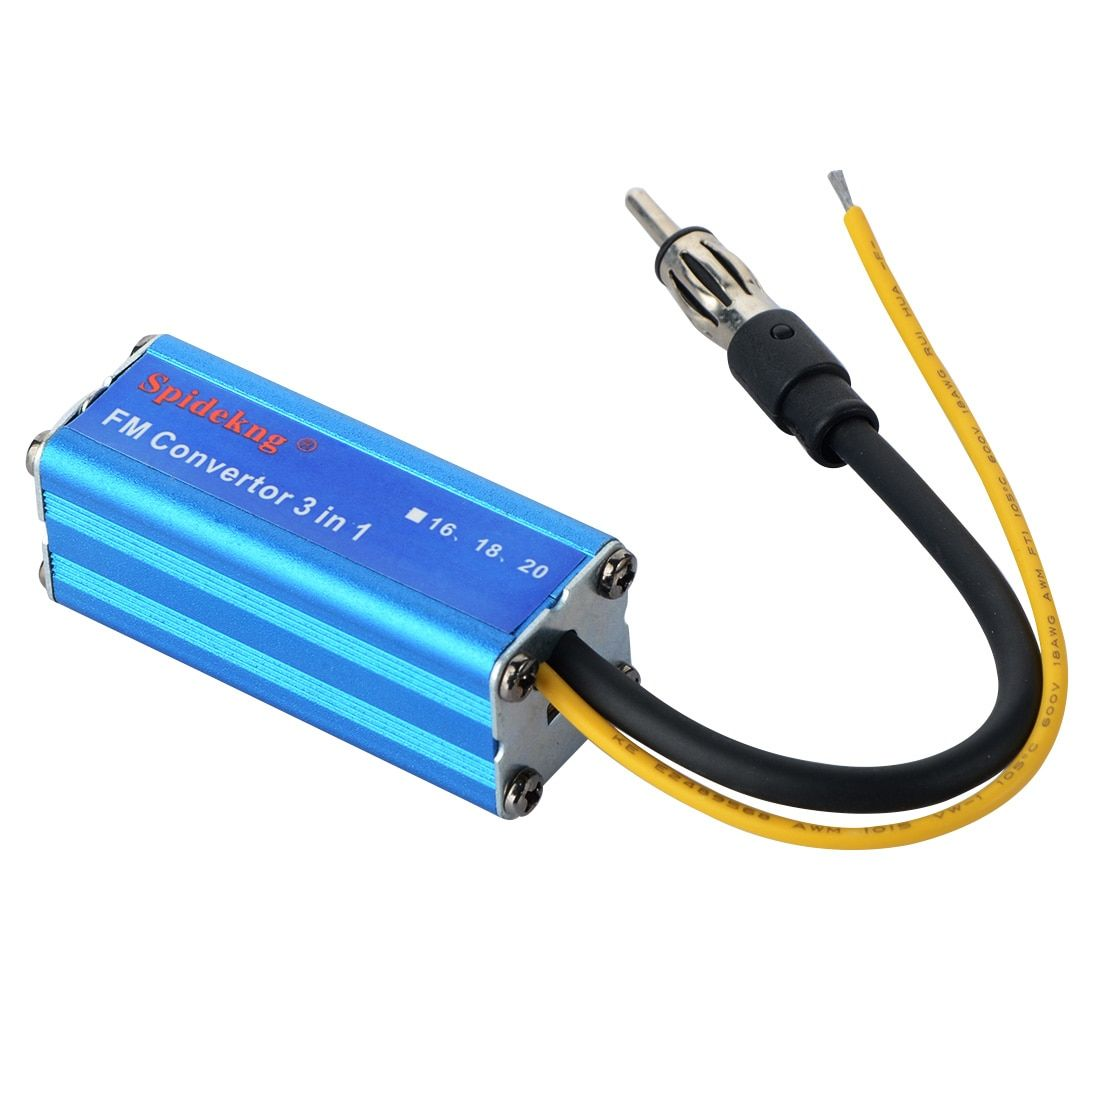 Sale DC 12V 16MHz Car Auto Automobile Blue Aluminum MP3 FM Convertor Adapter Free Shipping  Drop shipping Durable